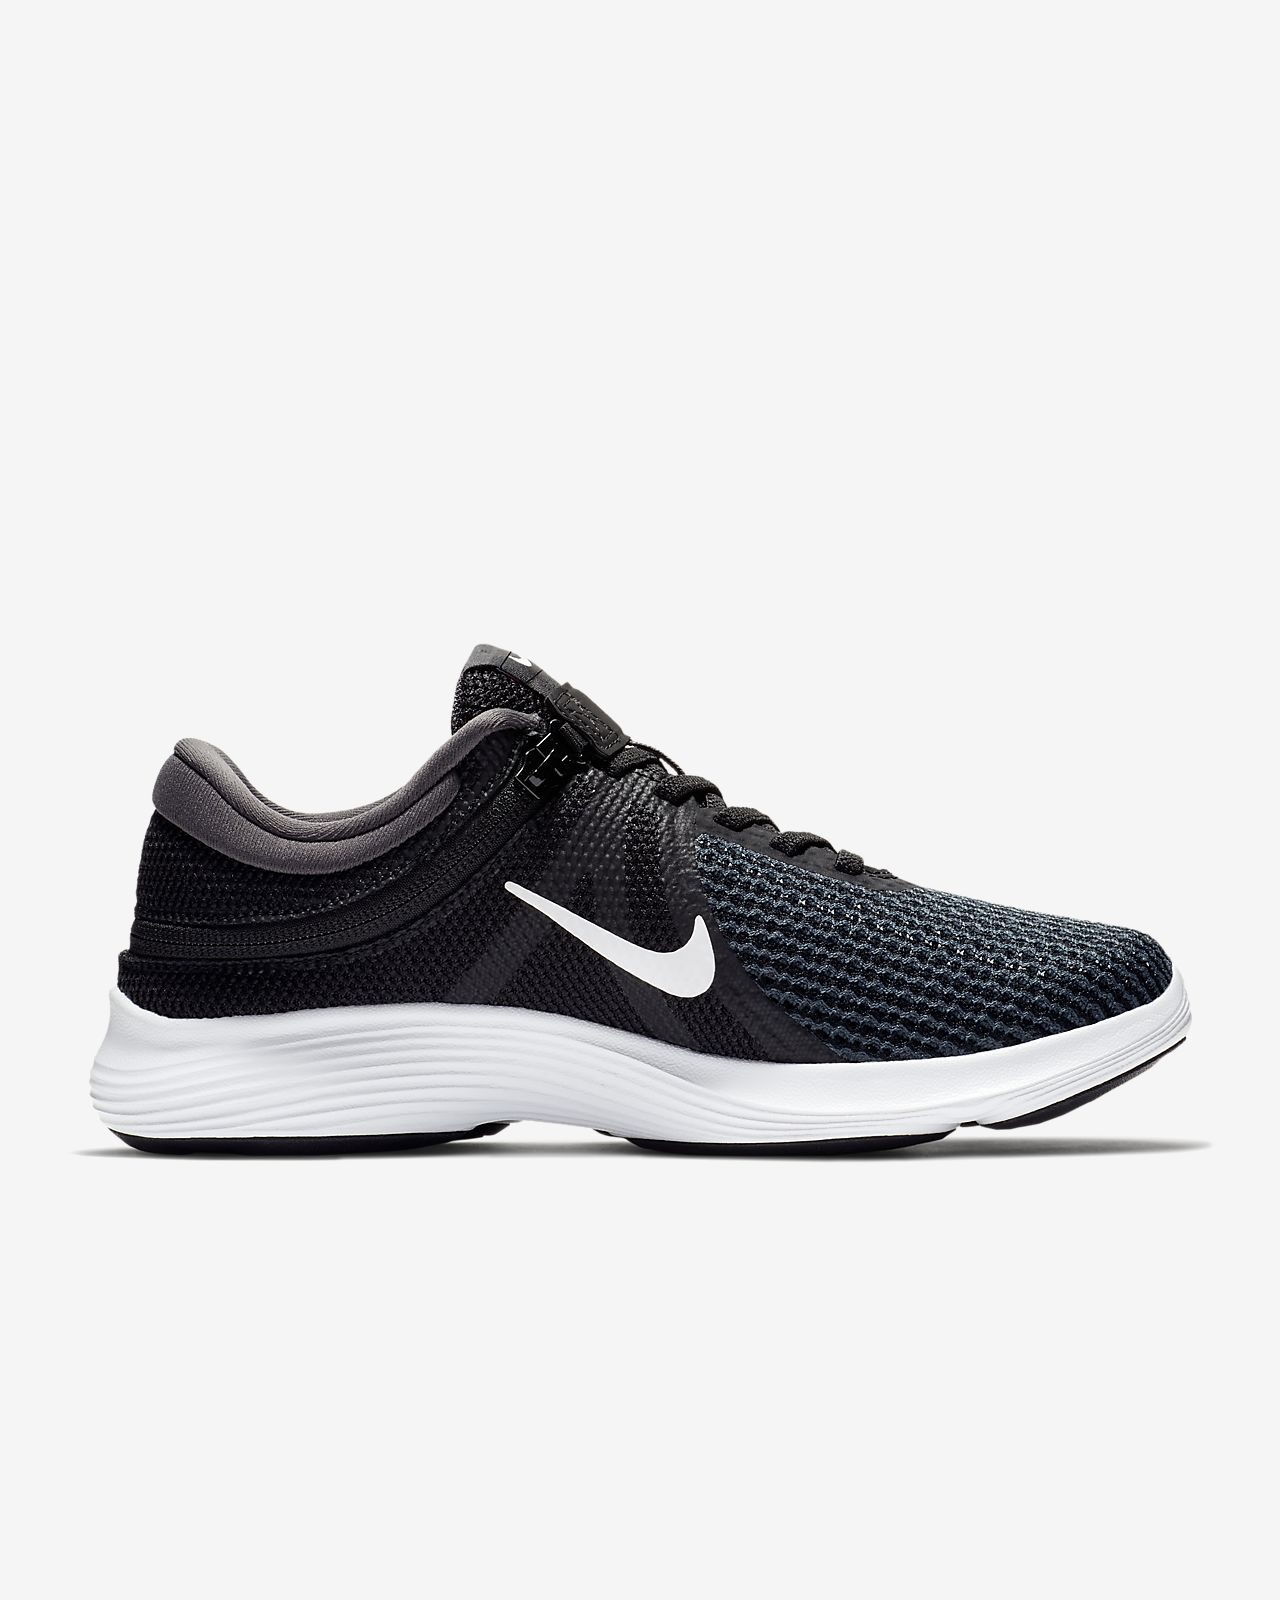 Nike Revolution 4 FlyEase Women's Running Shoe